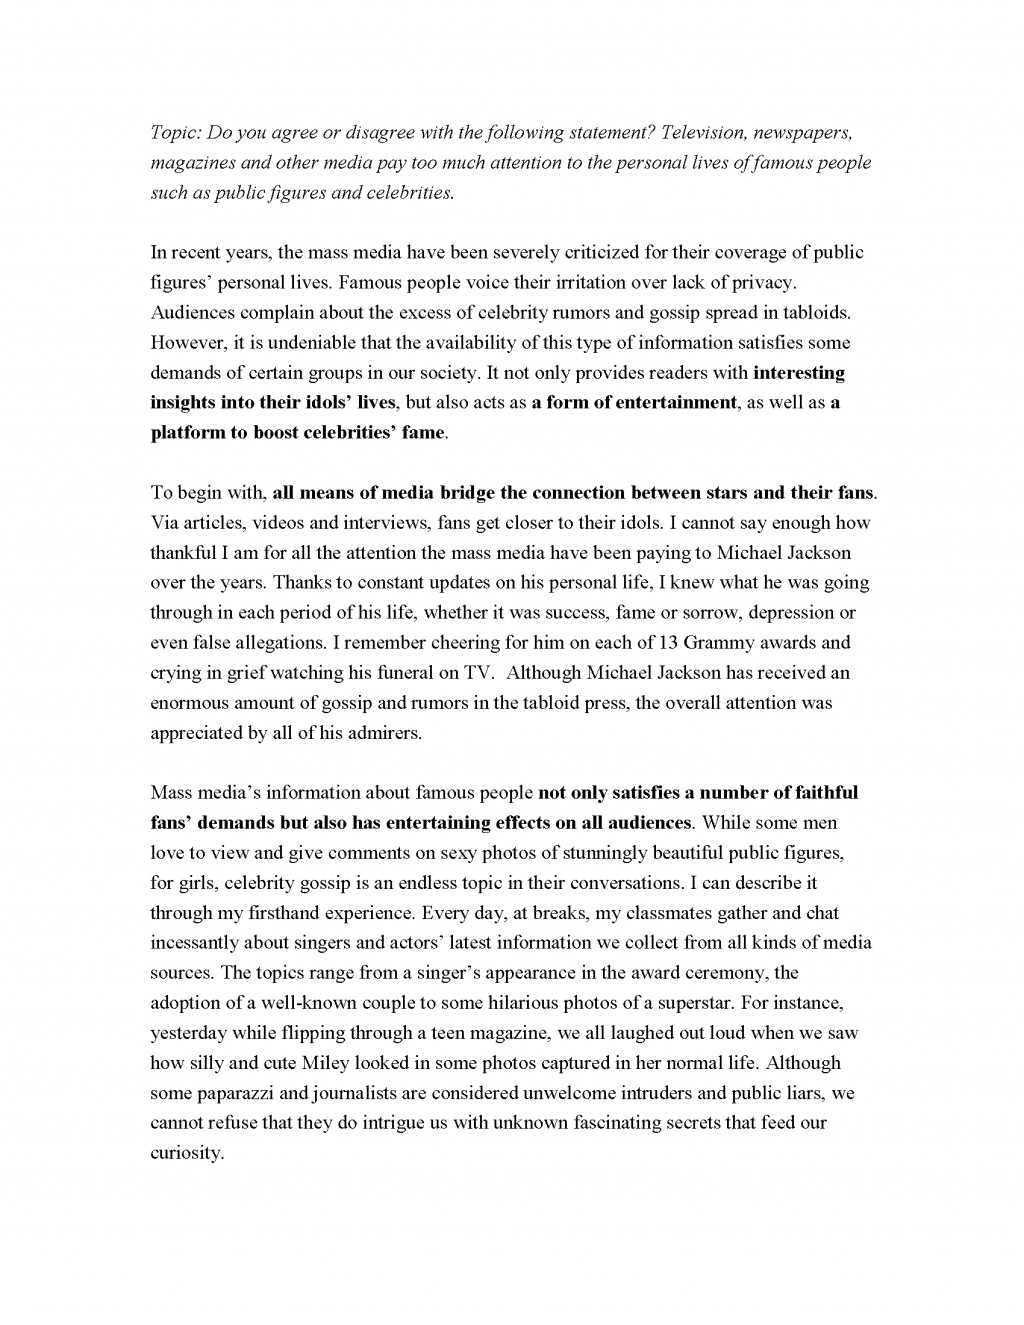 006 Essay Example Toefl Topics Essays On Privacy Agree Disagree Writing Pdf The Mass Medias Attent Ibt With Answers Examples Dreaded 2017 185 Ets Large